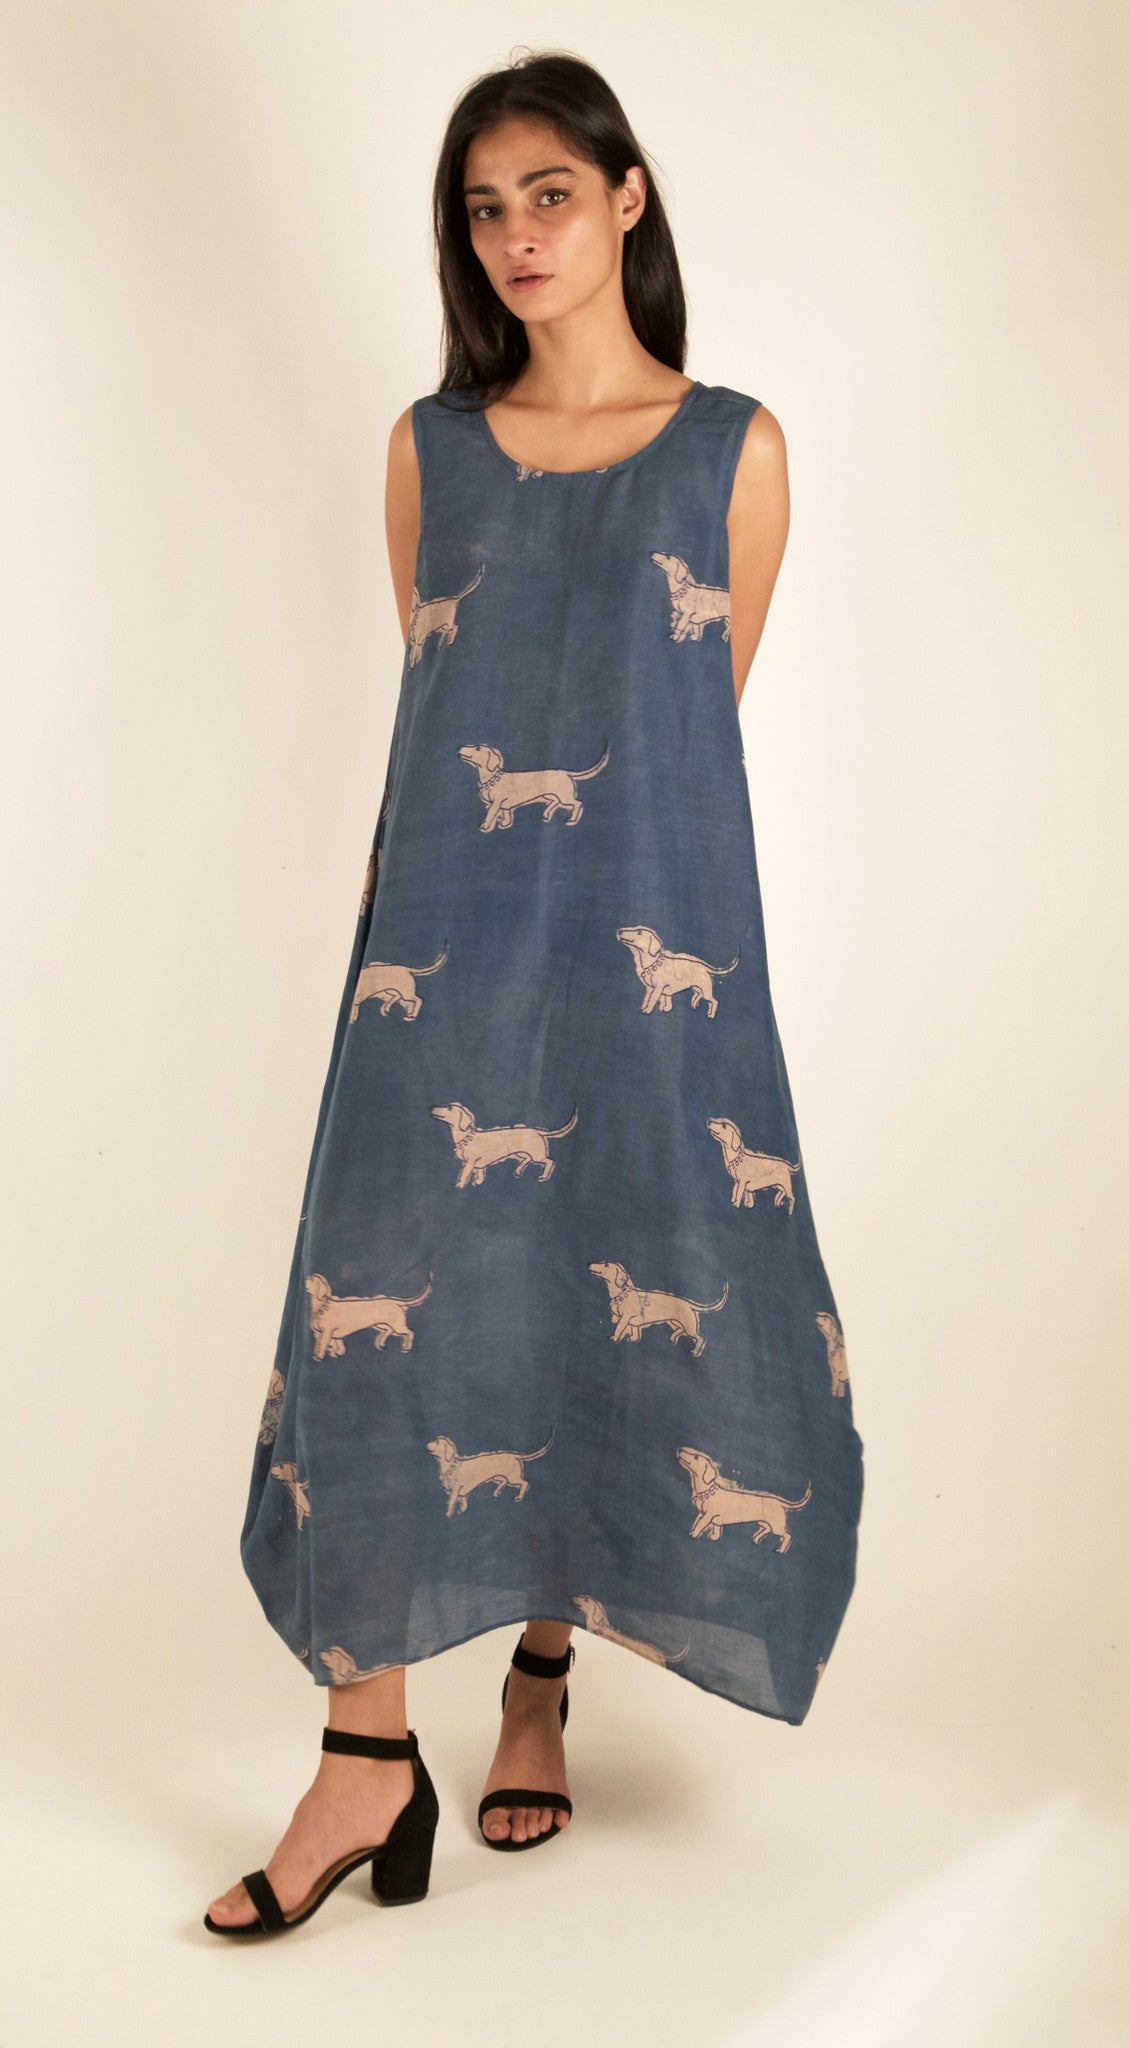 Spaced Out Weiner Dog Dress in Indigo